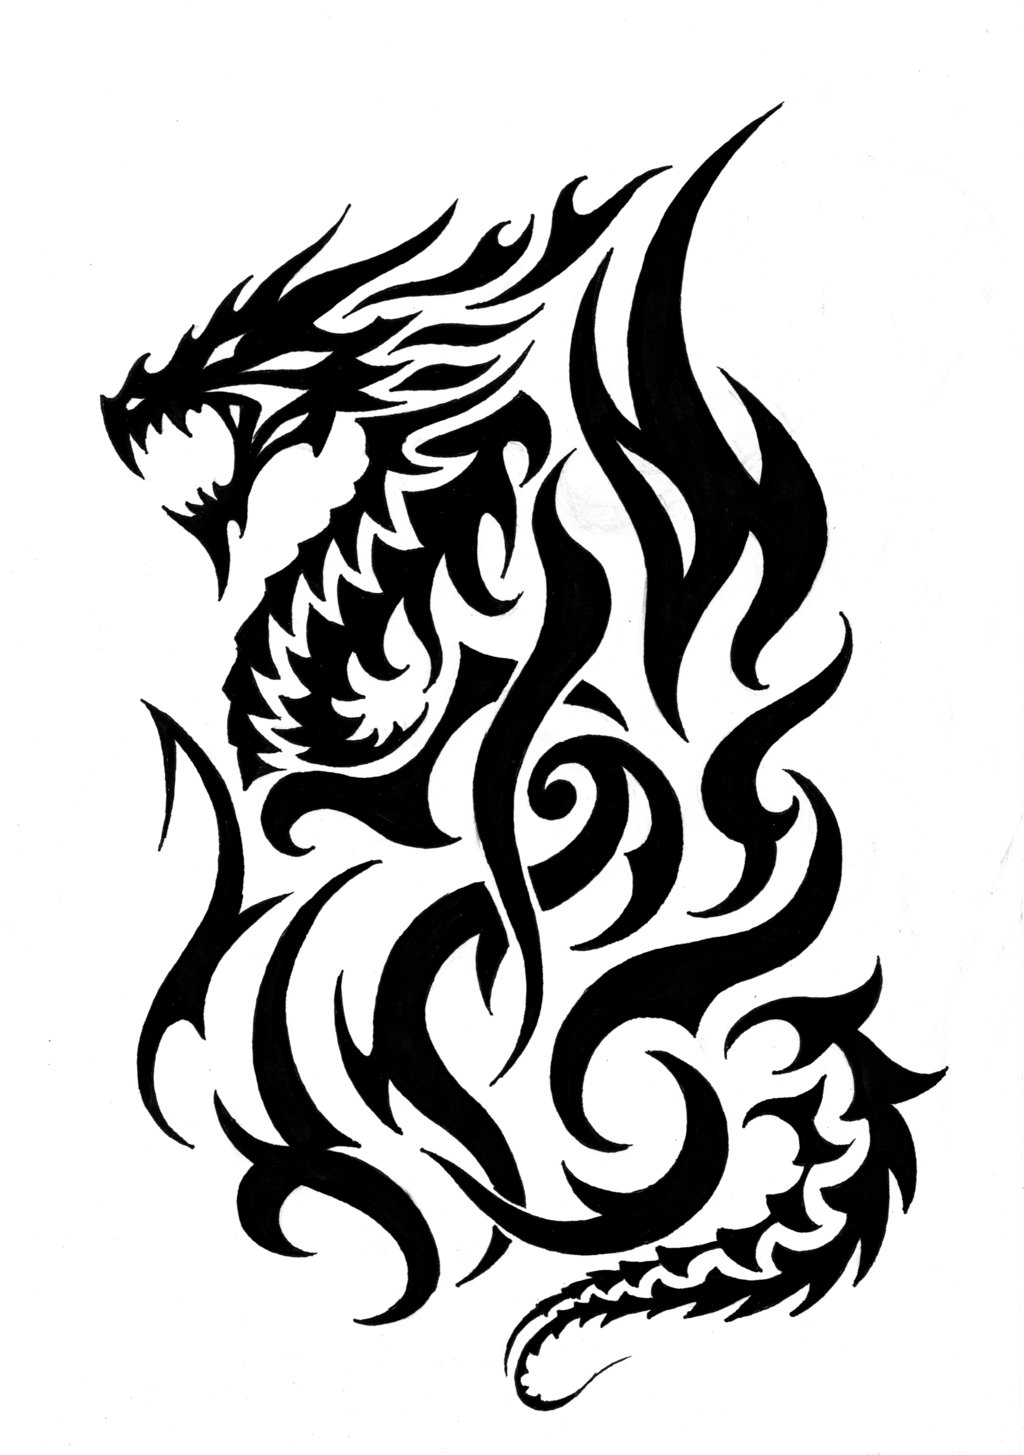 Fire breathing flame clipart black and white download Free Fire Breathing Dragon Tattoos, Download Free Clip Art, Free ... download